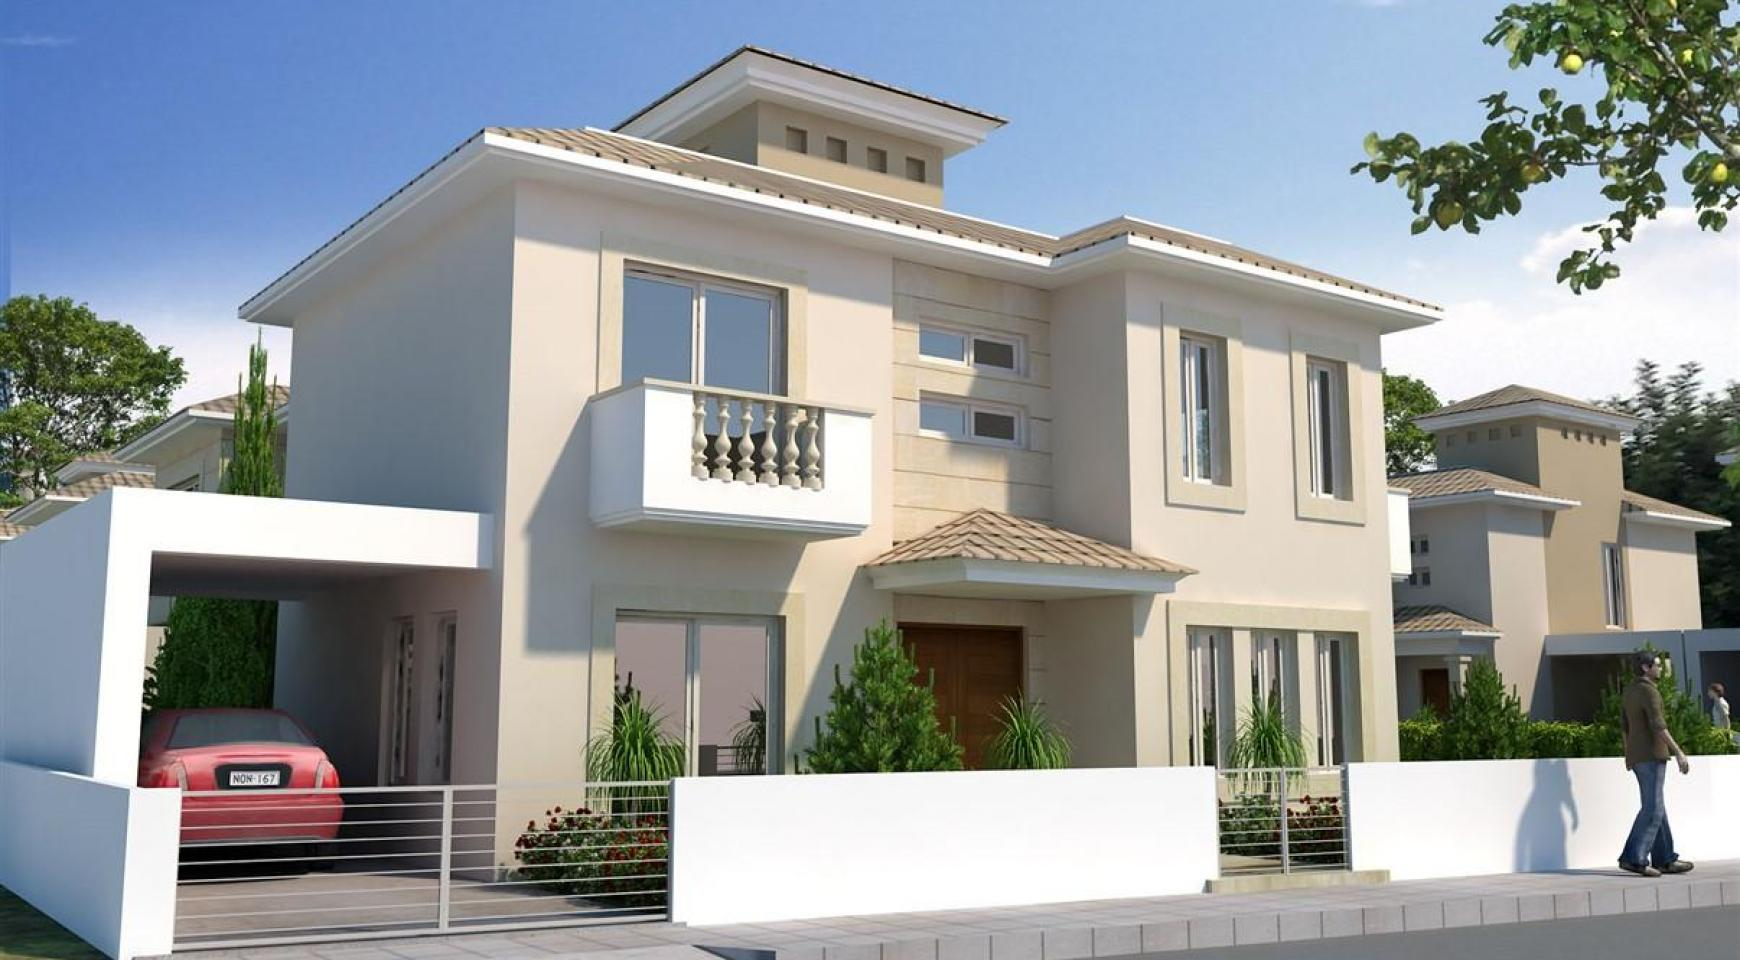 3 Bedroom Villa within a New Project - 11